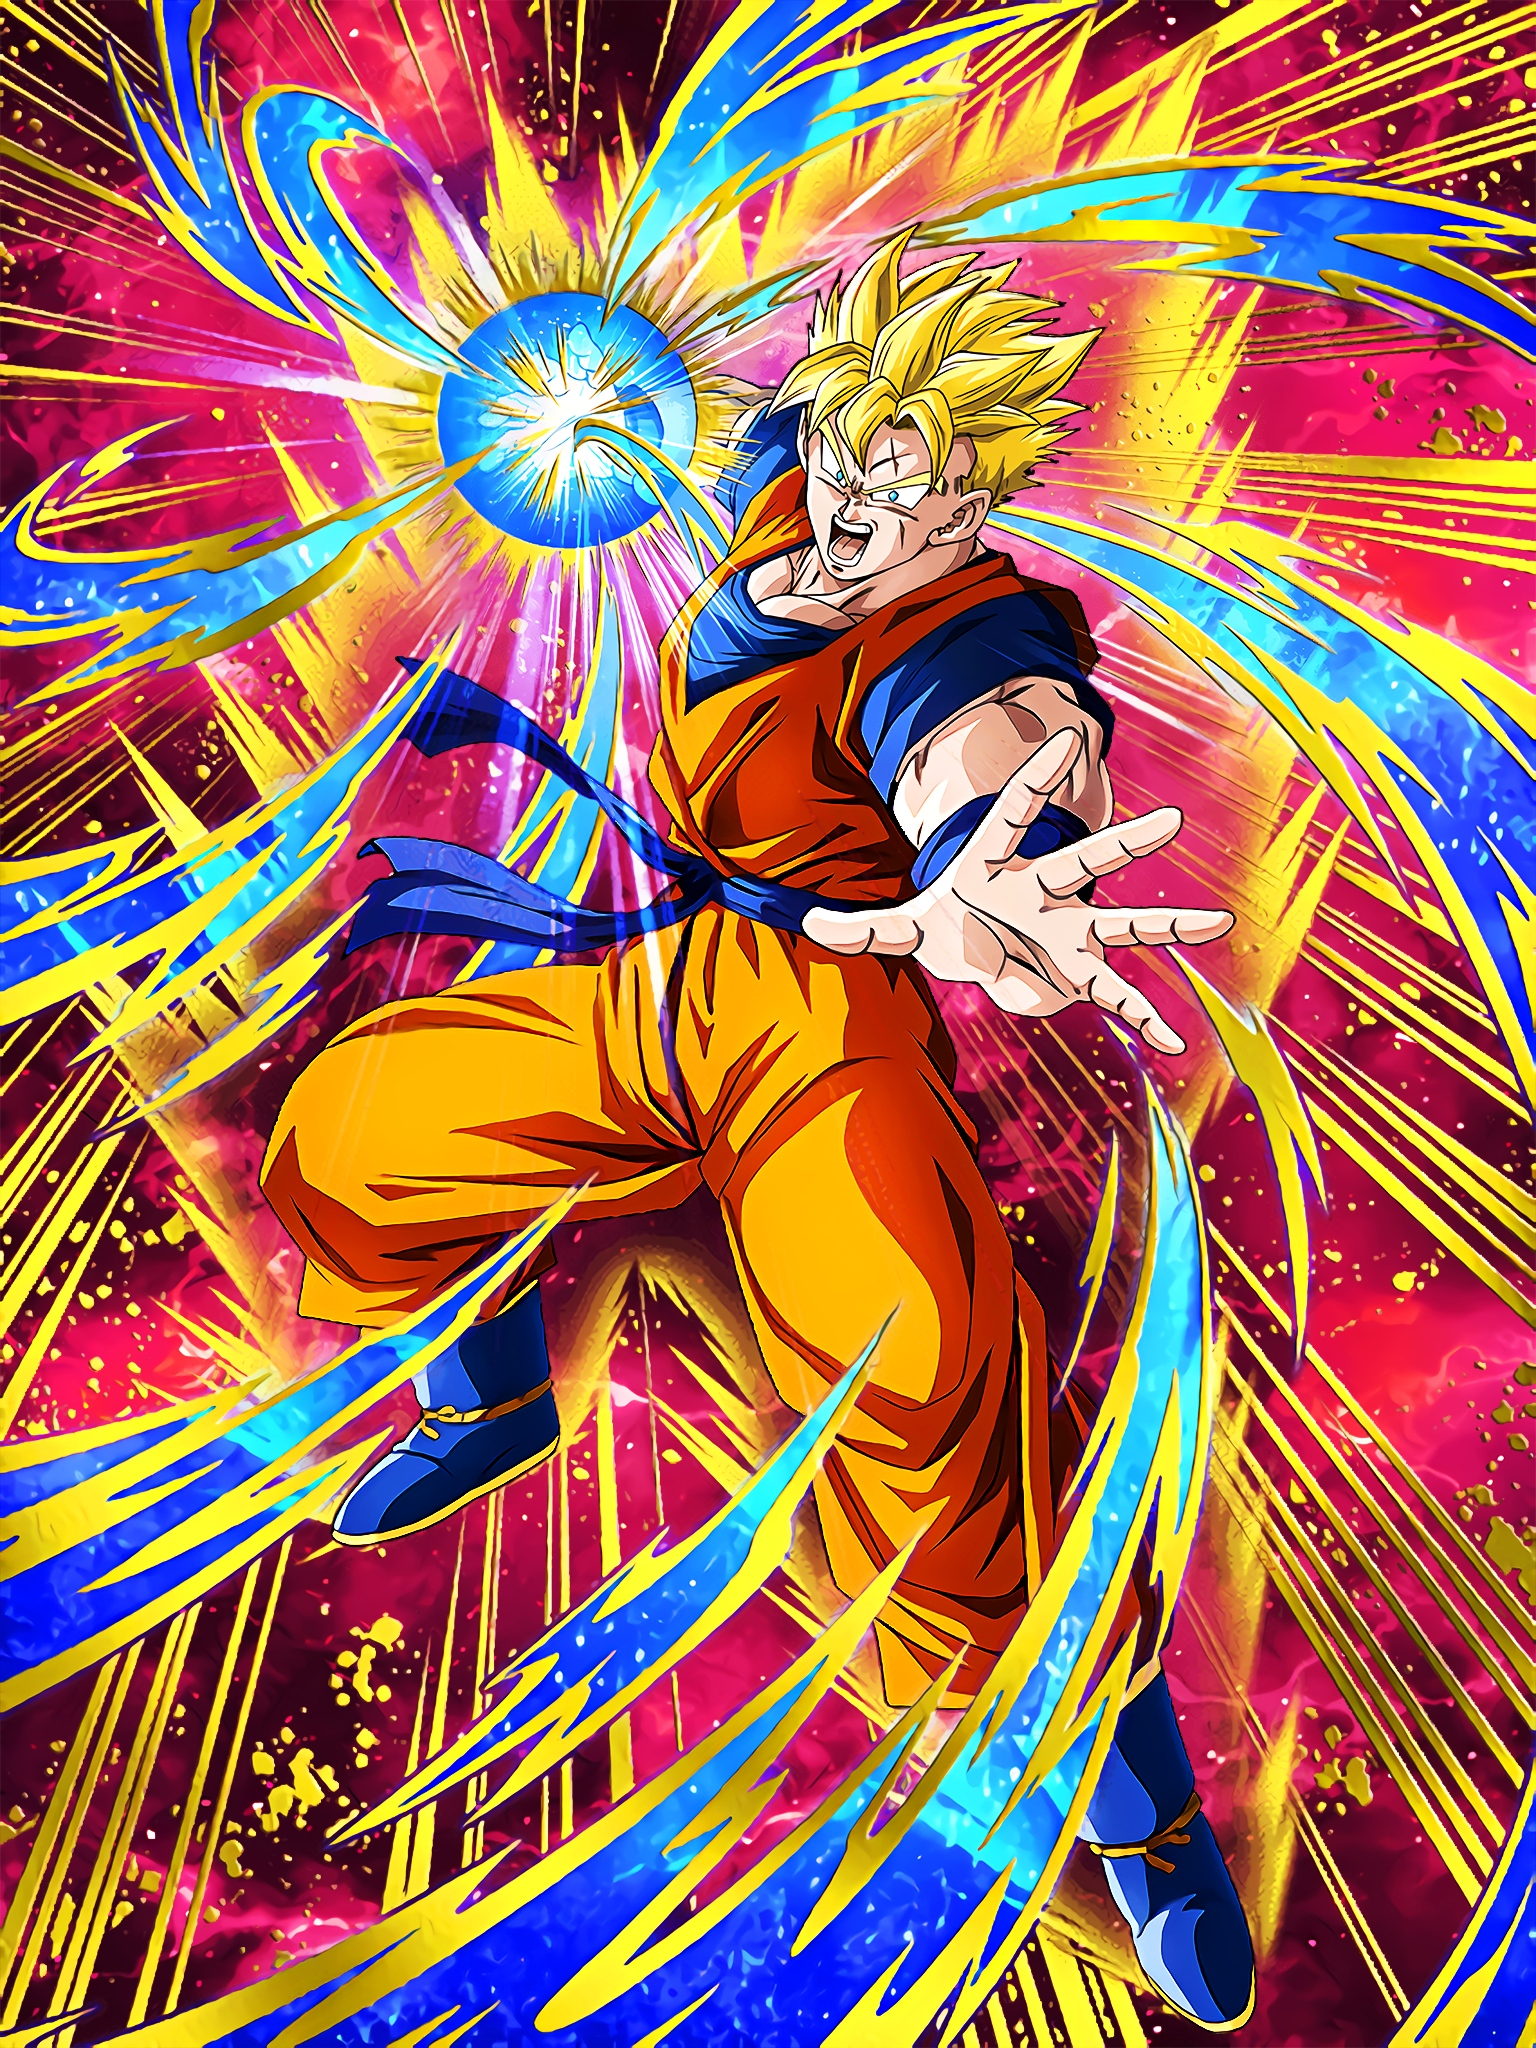 A Desperate Stand Super Saiyan Gohan Future Art (Dragon Ball Z Dokkan Battle).jpg